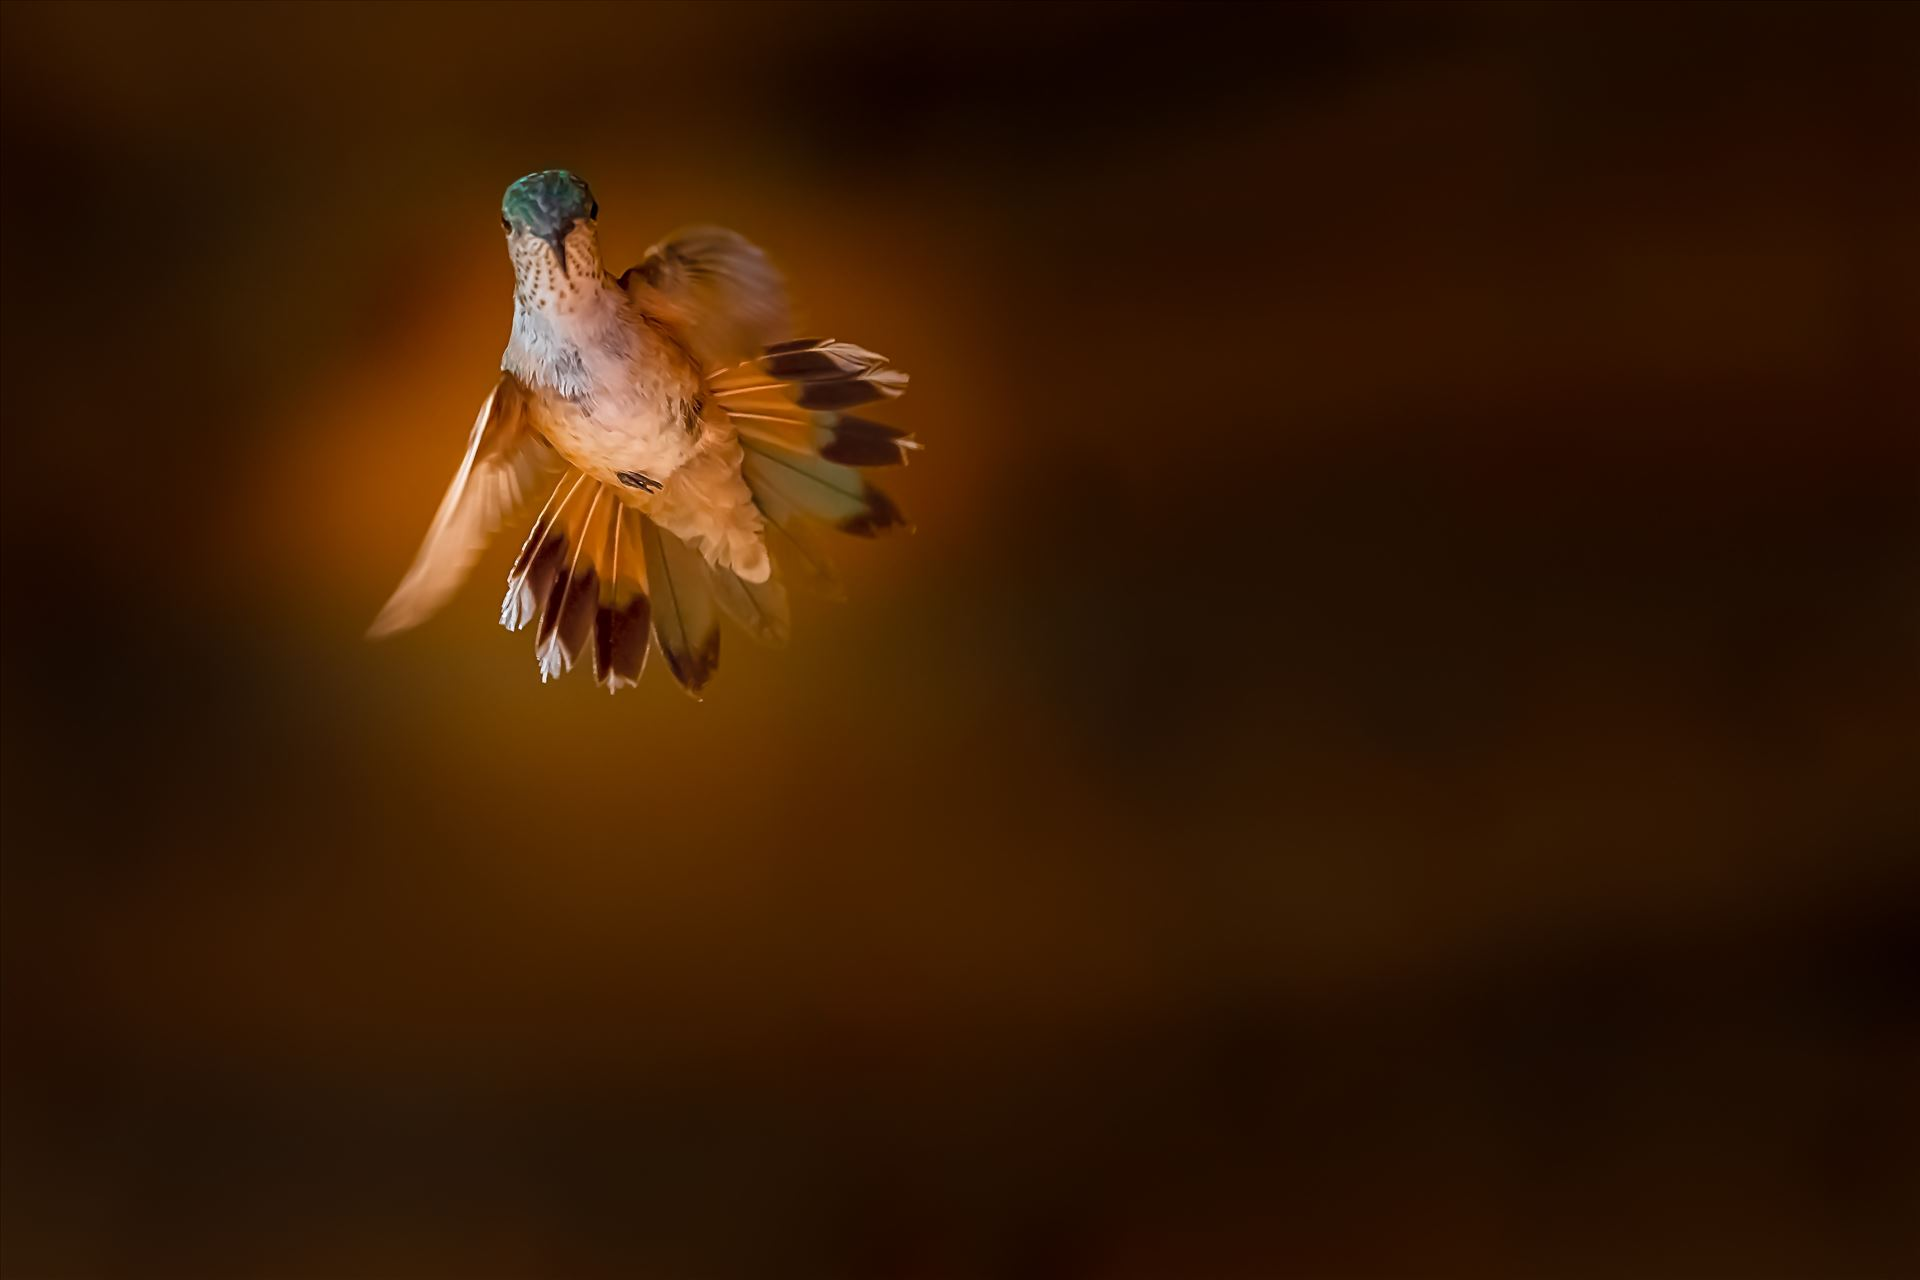 hummingbird in flight sf.jpg Hummingbird in flight Cloudcroft, New Mexico by Terry Kelly Photography